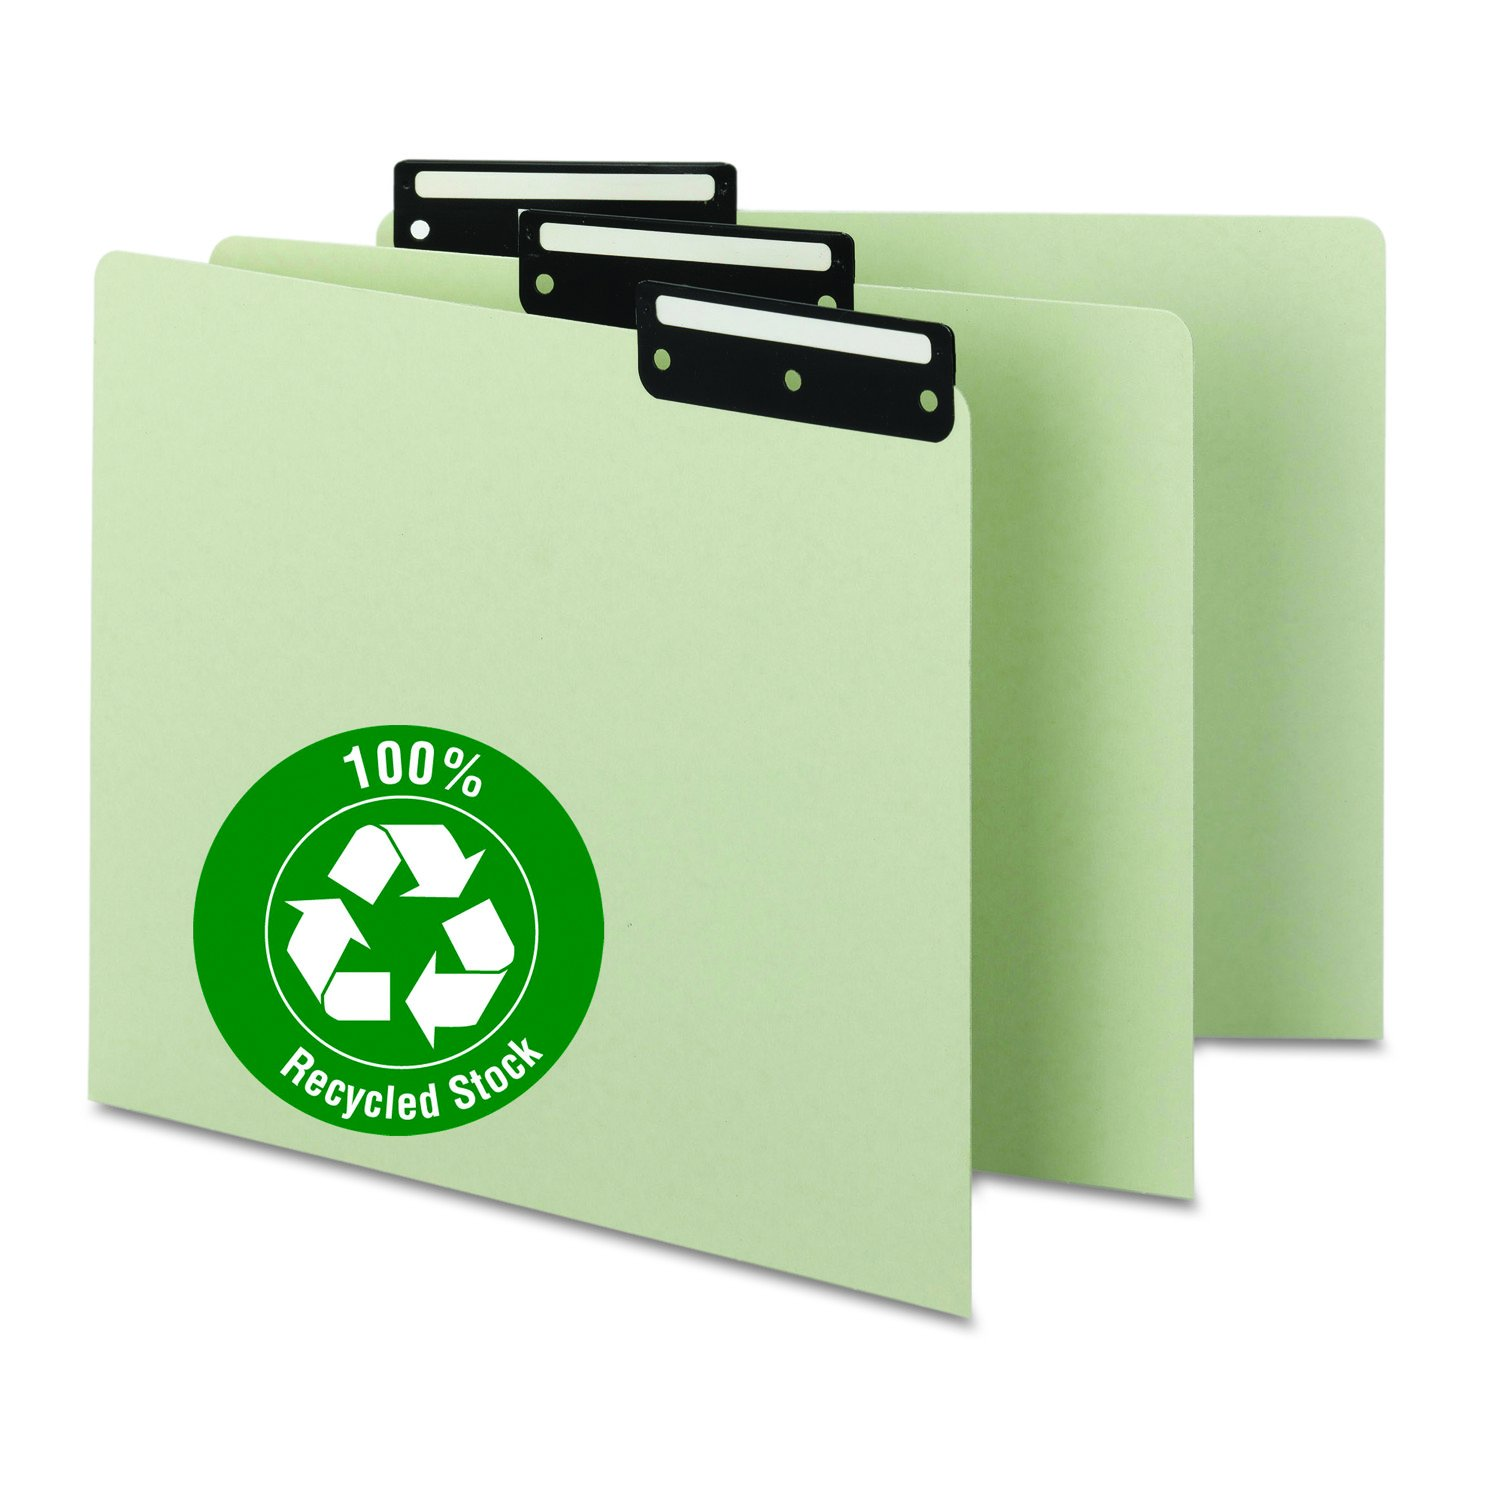 Smead 100% Recycled Pressboard File Guides, Flat Metal 1/3-Cut Tab with Insert (Blank), Letter Size, Gray/Green, 50 per Box (50534)